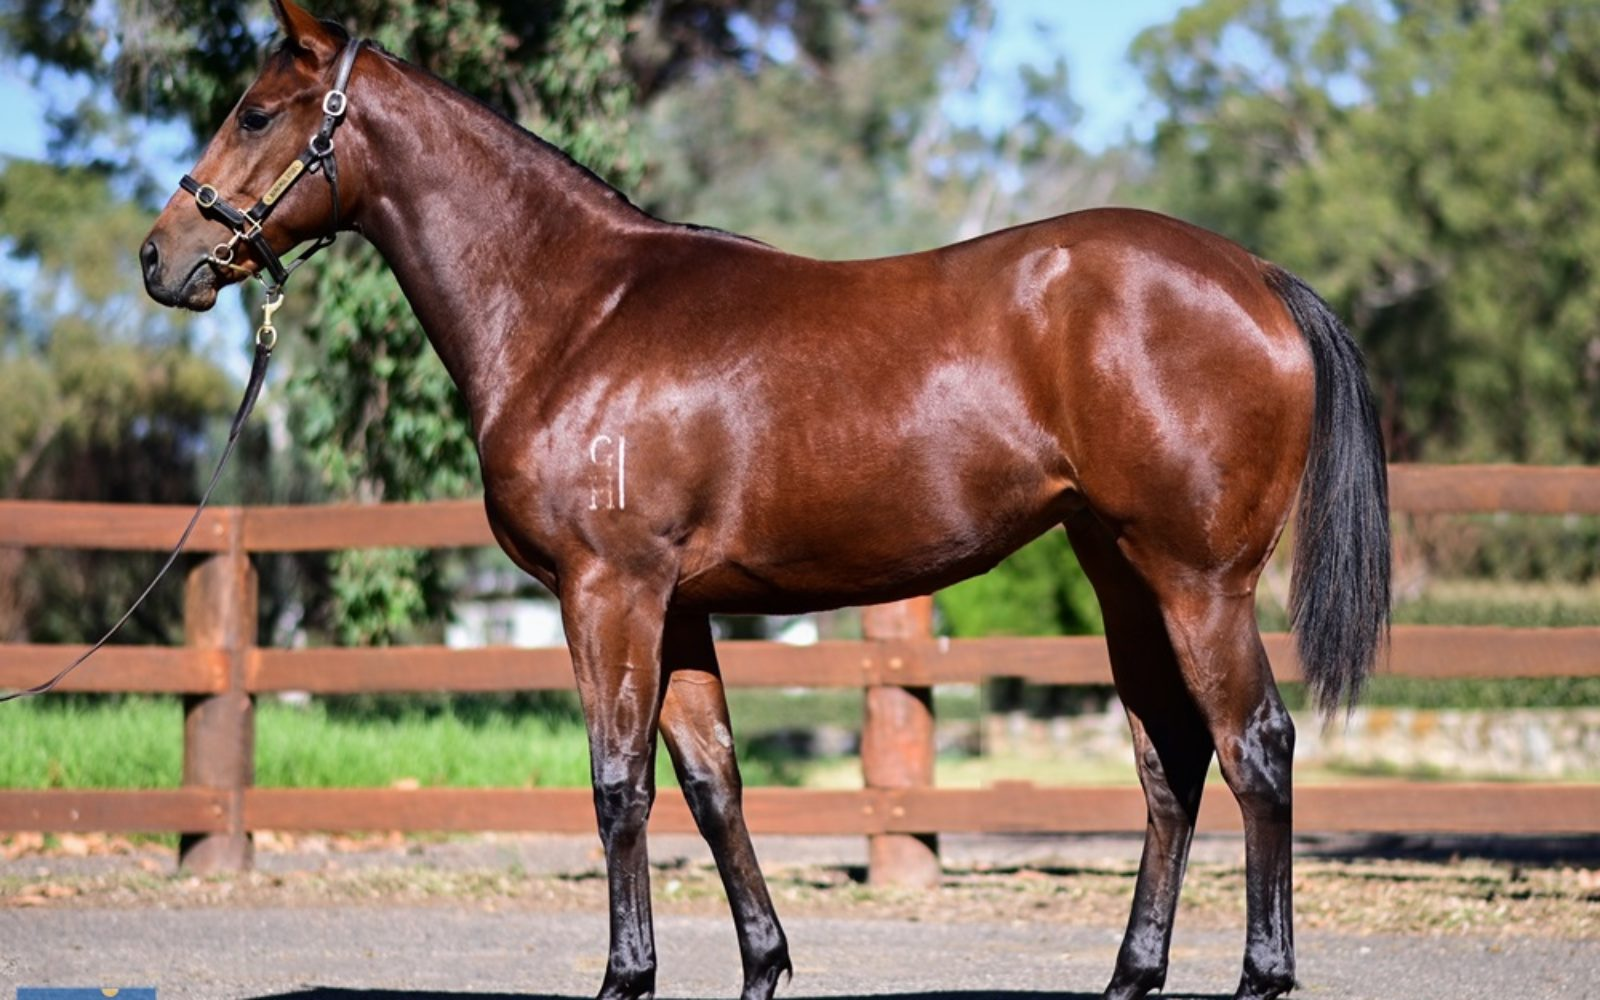 Magic Million Gold Coast Yearling Sale – Lot 1631 Vancouver (AUS) Win the Lottery (AUS) Bay Filly